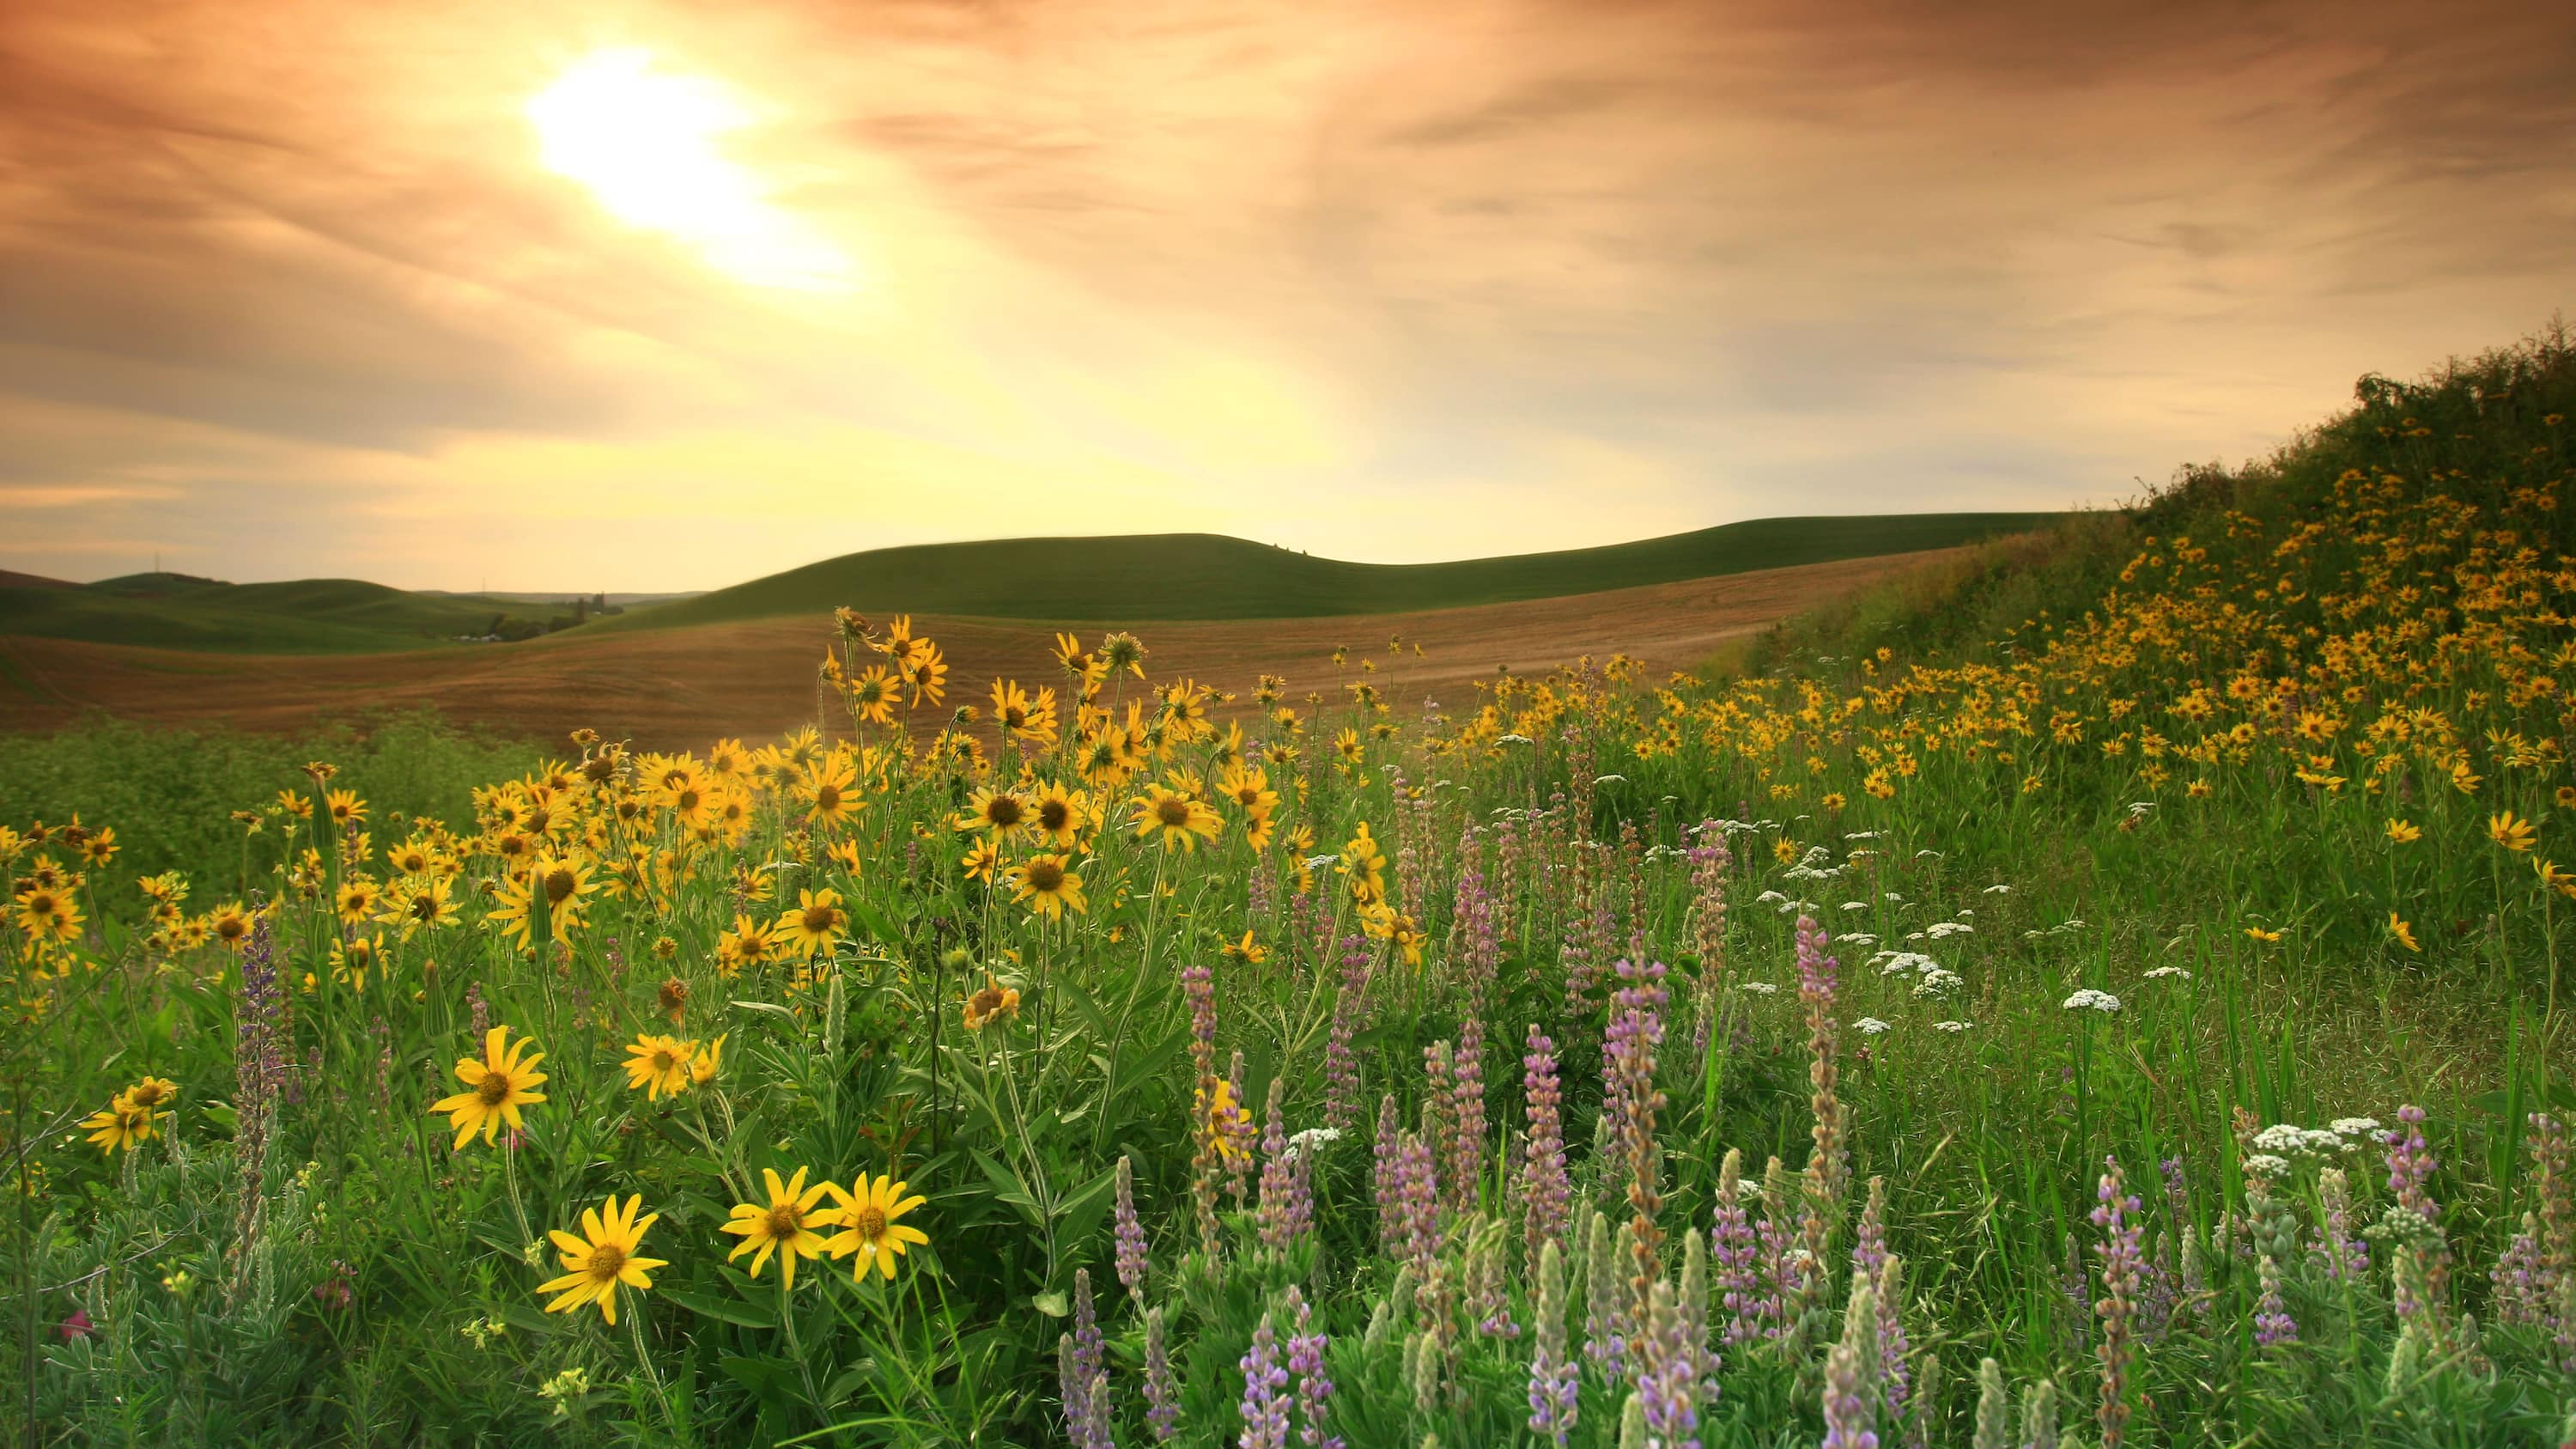 Grasslands: A Hidden Wilderness: Canada's beautiful prairie grasslands are  among the most endangered ecosystems in the world